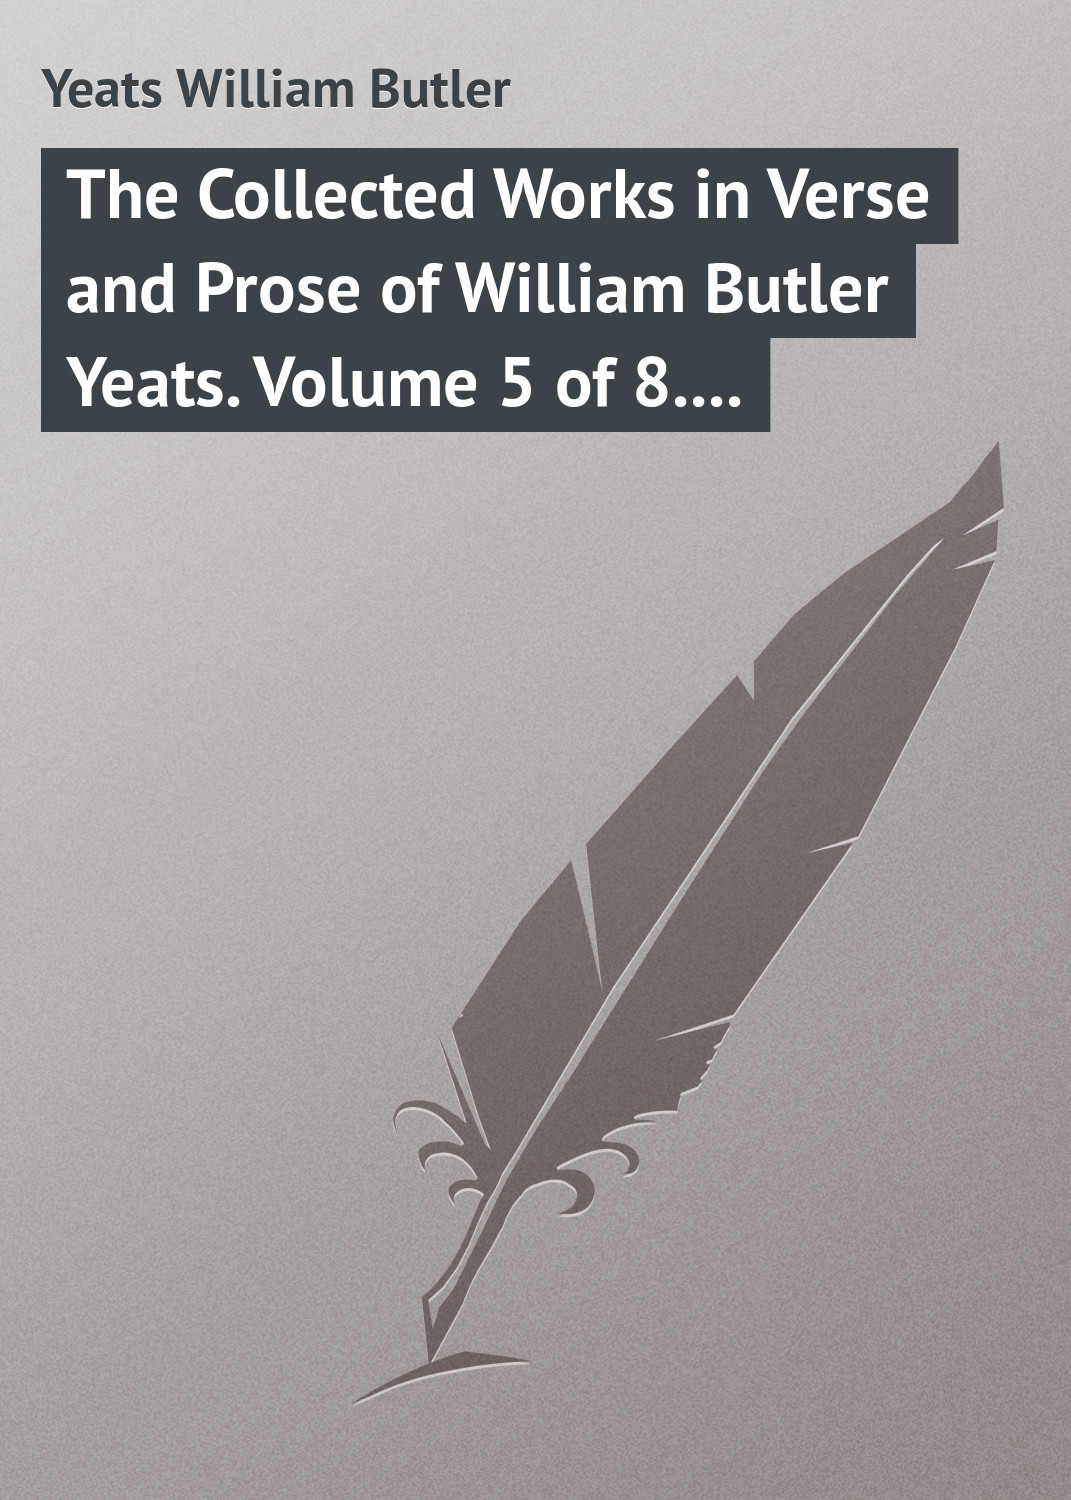 William Butler Yeats The Collected Works in Verse and Prose of William Butler Yeats. Volume 5 of 8. The Celtic Twilight and Stories of Red Hanrahan the collected short stories of louis l amour volume 4